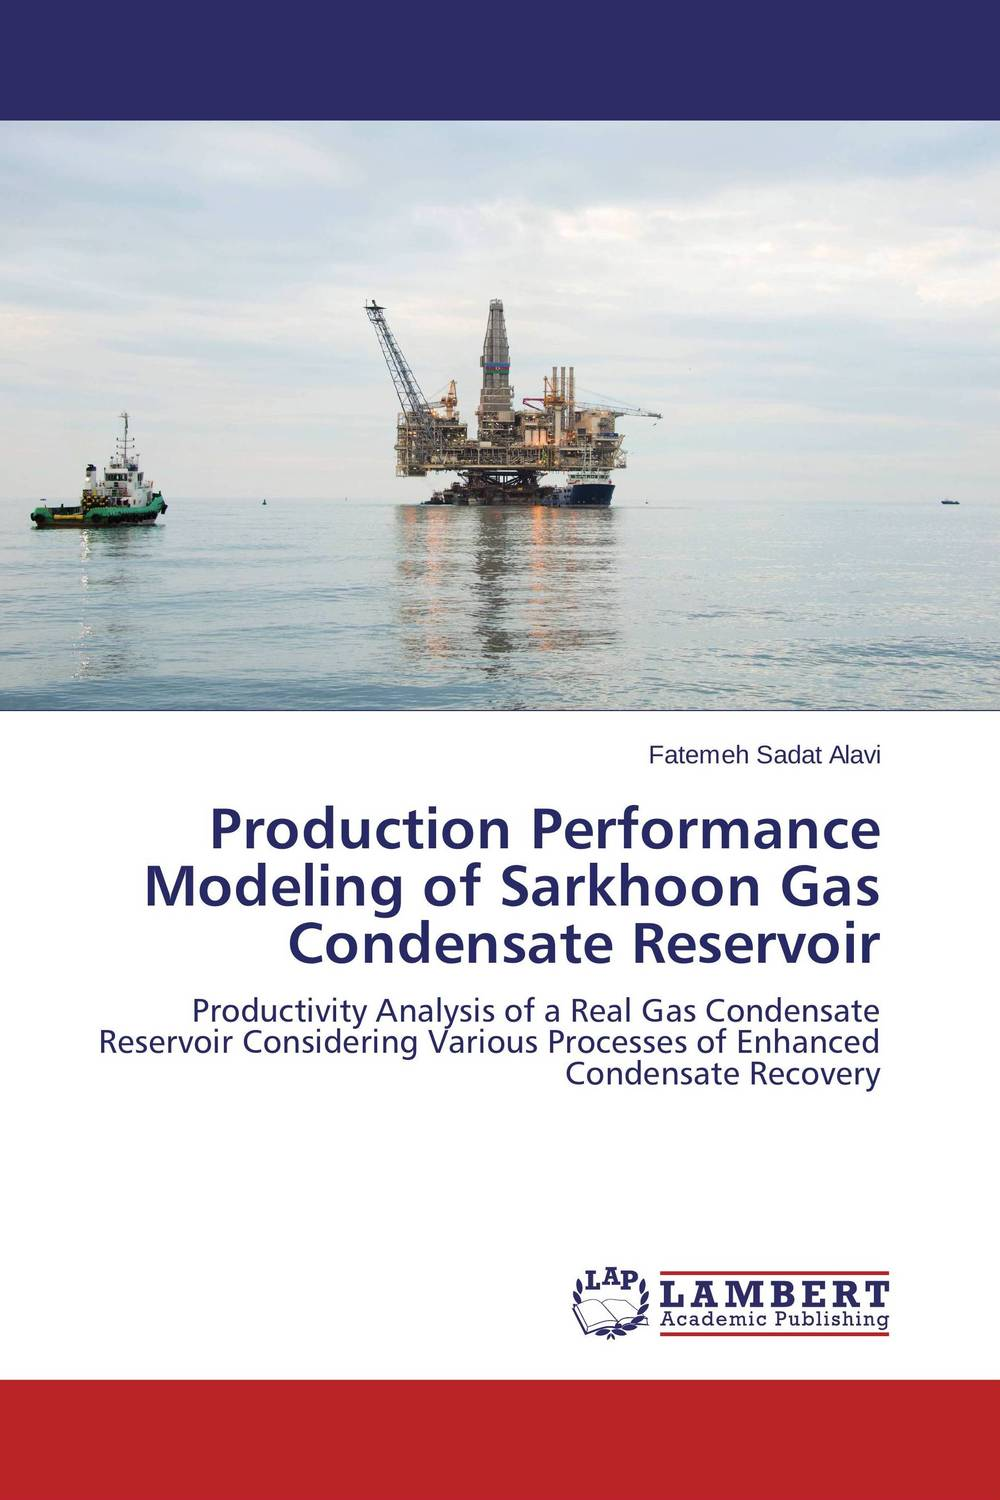 Production Performance Modeling of Sarkhoon Gas Condensate Reservoir tarek ahmed working guide to reservoir rock properties and fluid flow